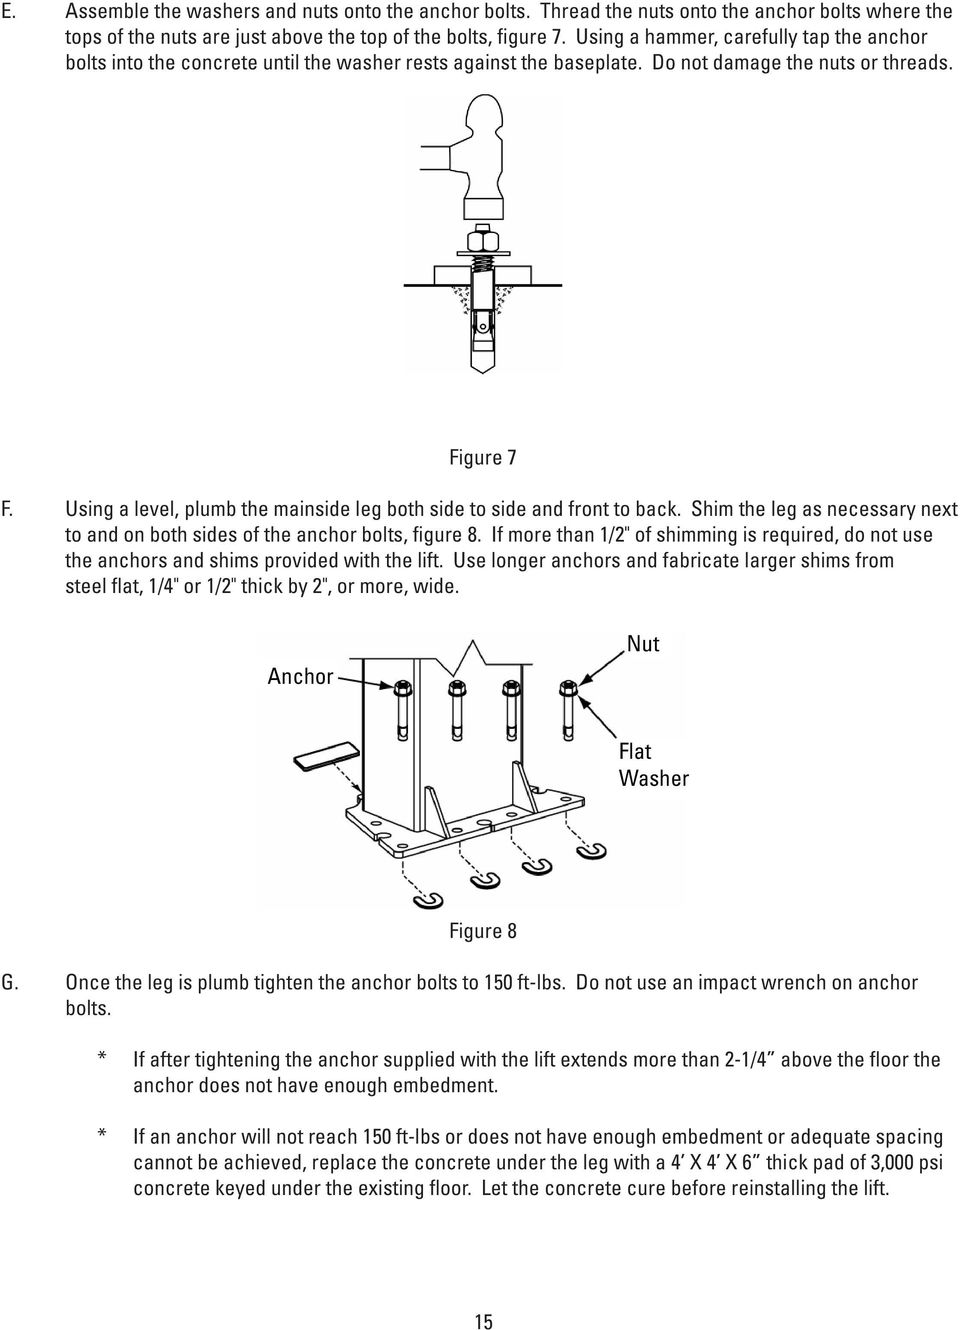 Nissan Sentra Service Manual: Garage Jack and Safety Stand and 2-Pole Lift